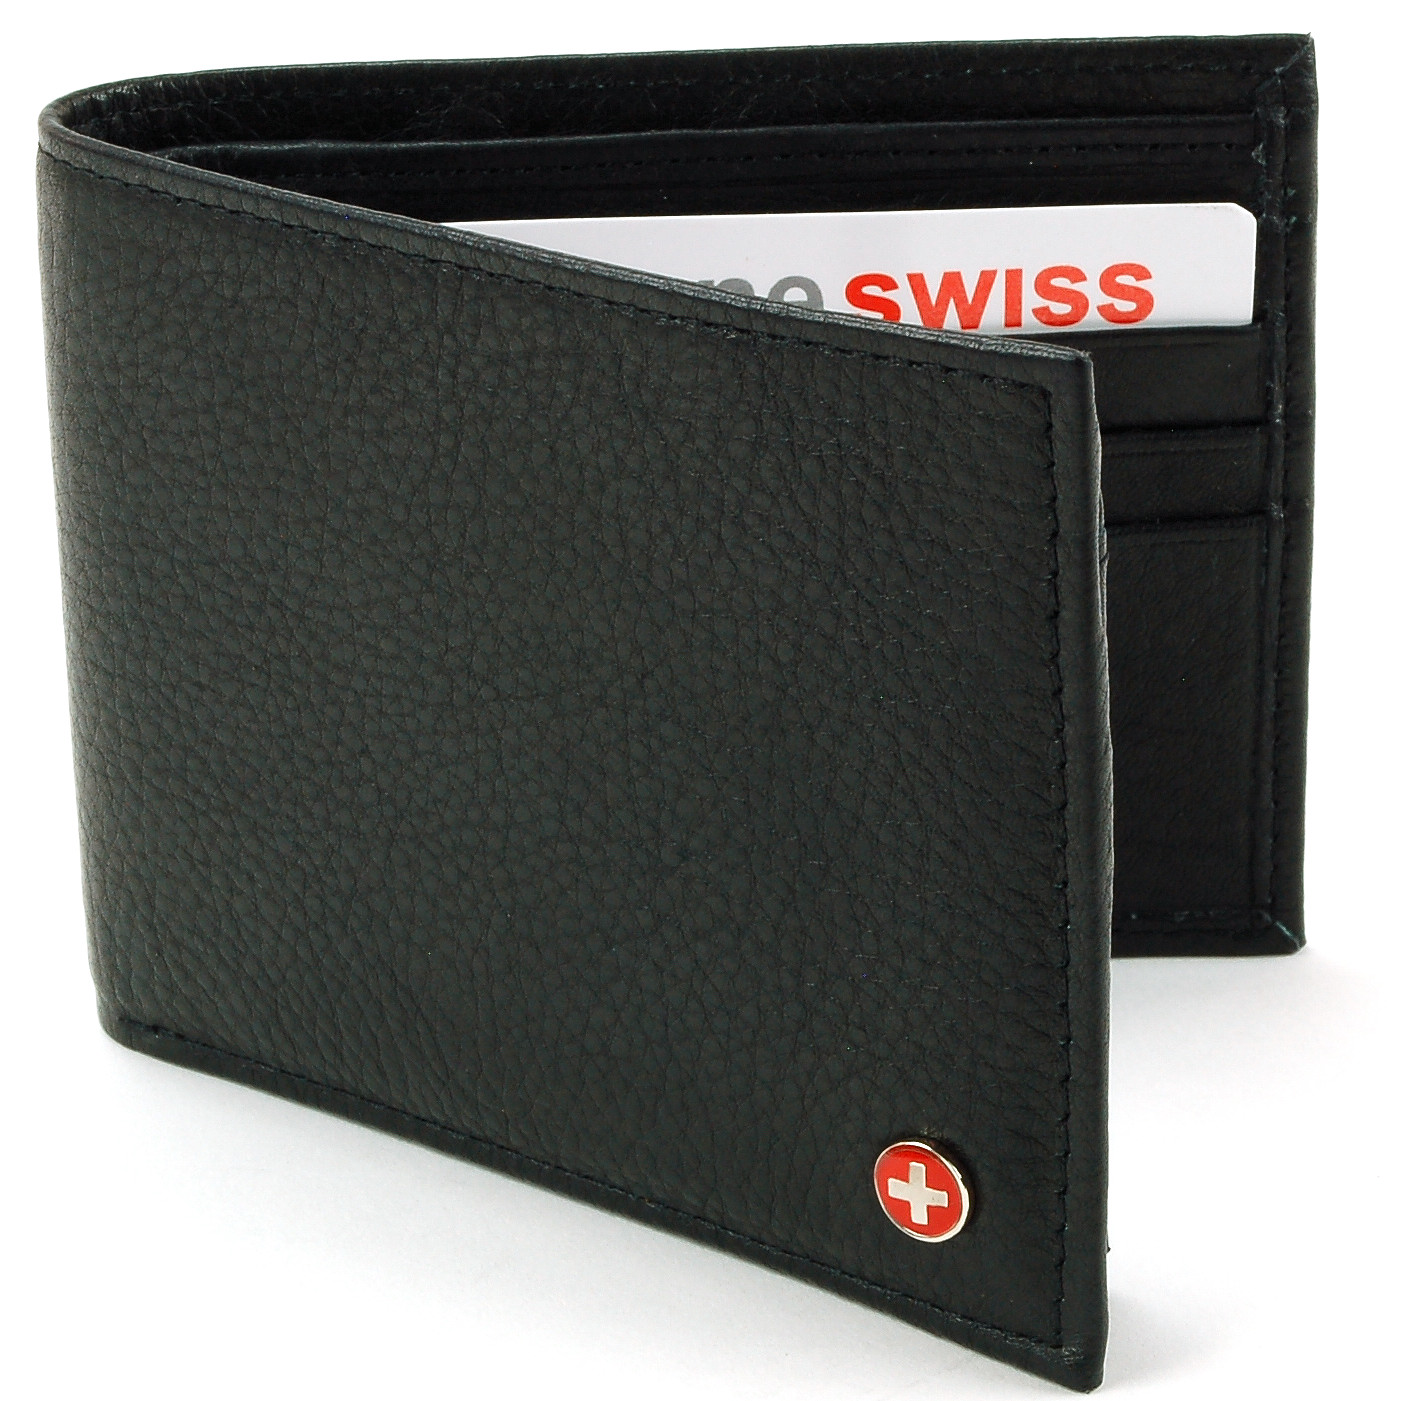 Image result for alpine swiss wallets